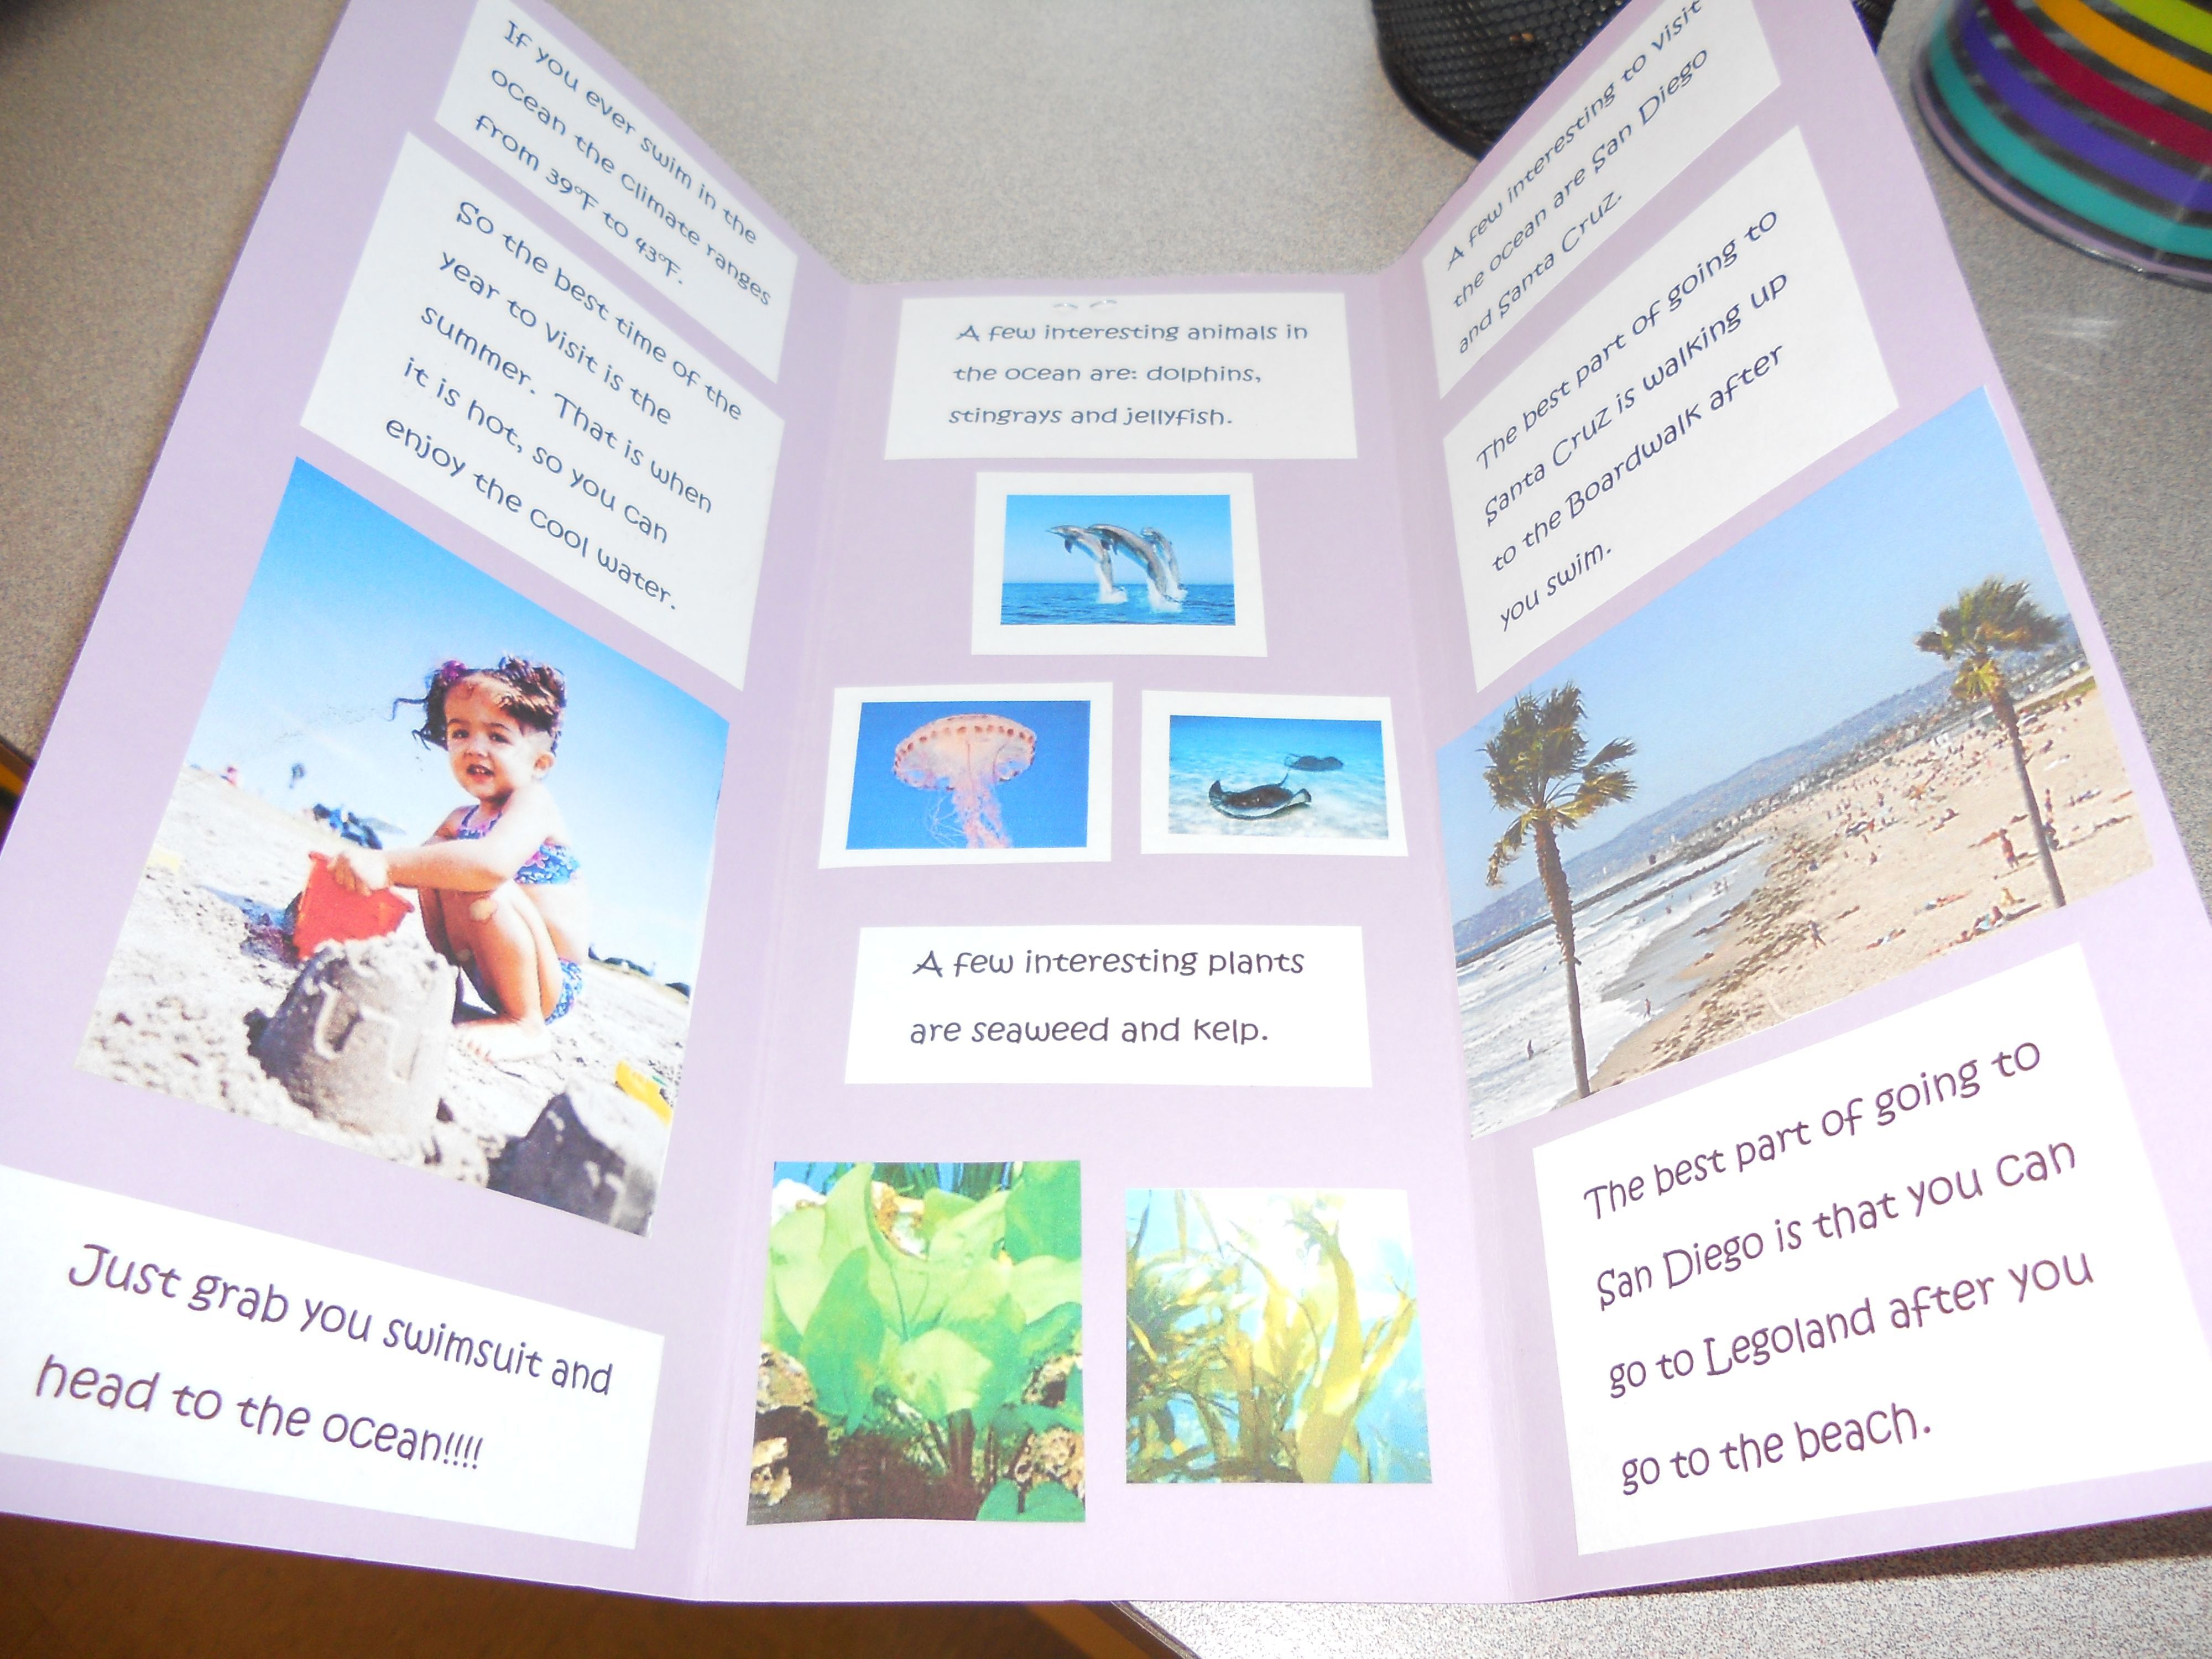 biome travel brochure as an assessment have the students create a brochure of a region in texas that explains the biome and land characteristics and why